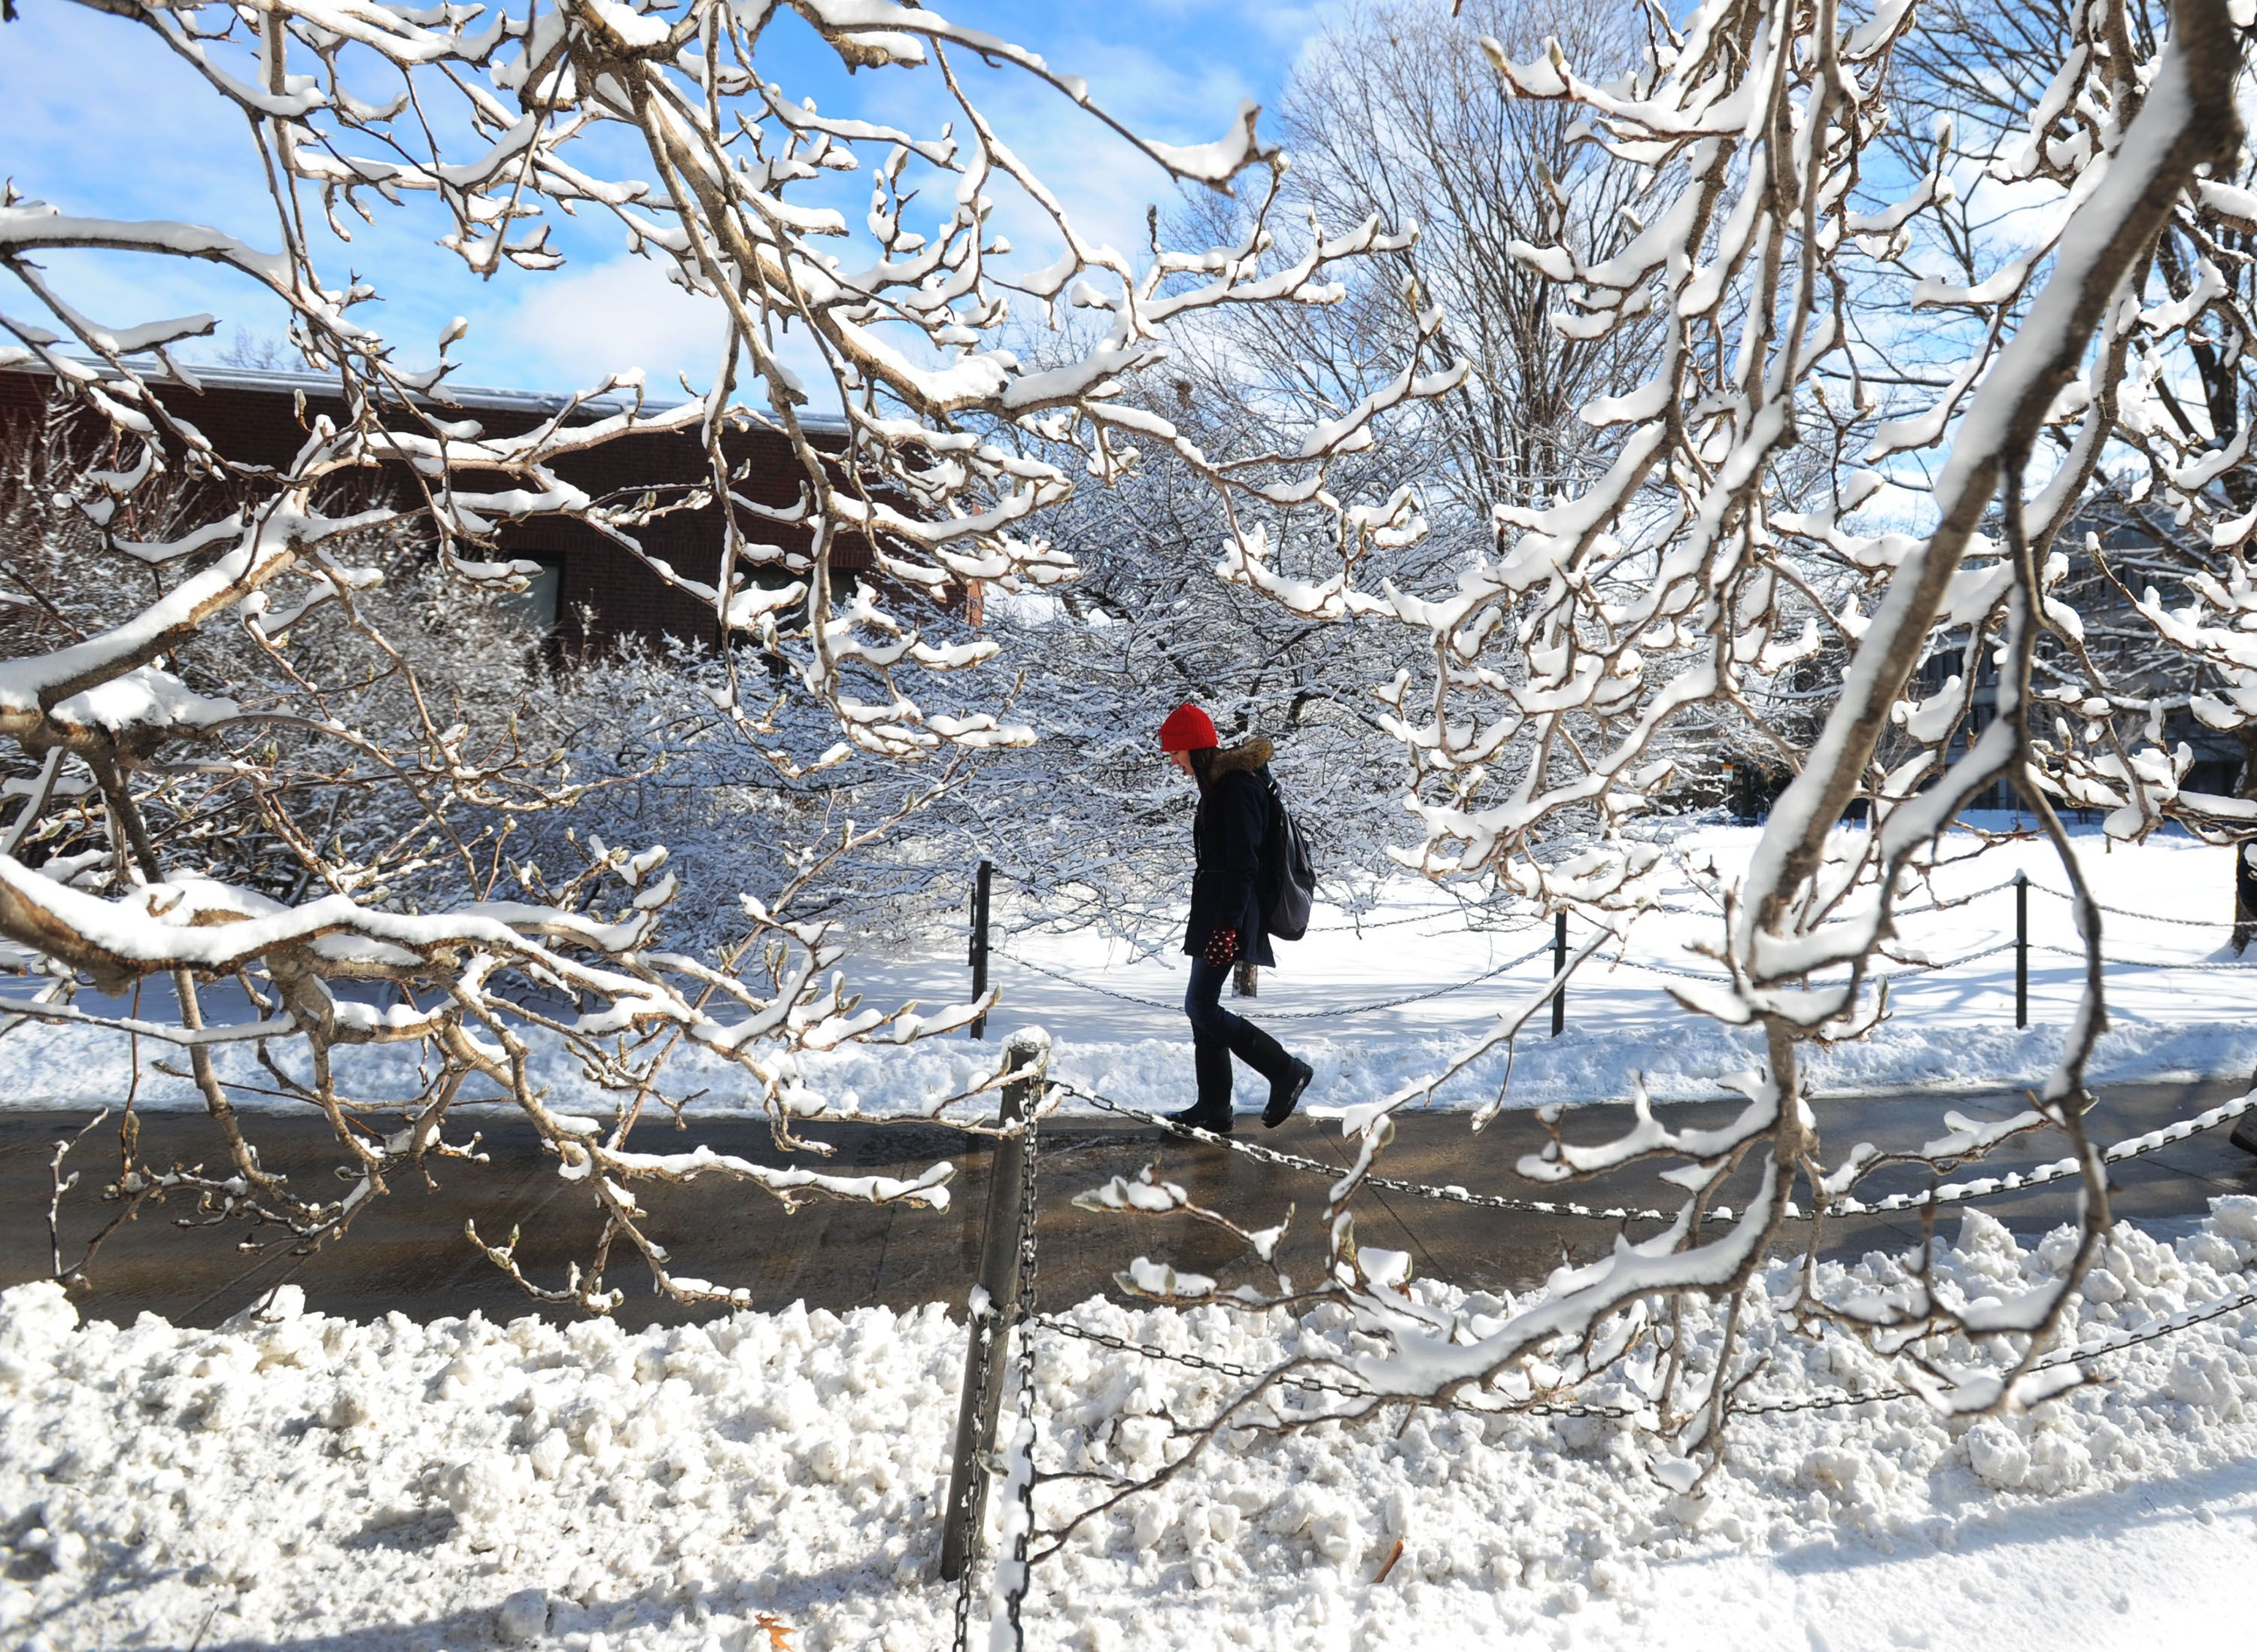 An Iowa State University Student Walks Past Snow Covered Trees On